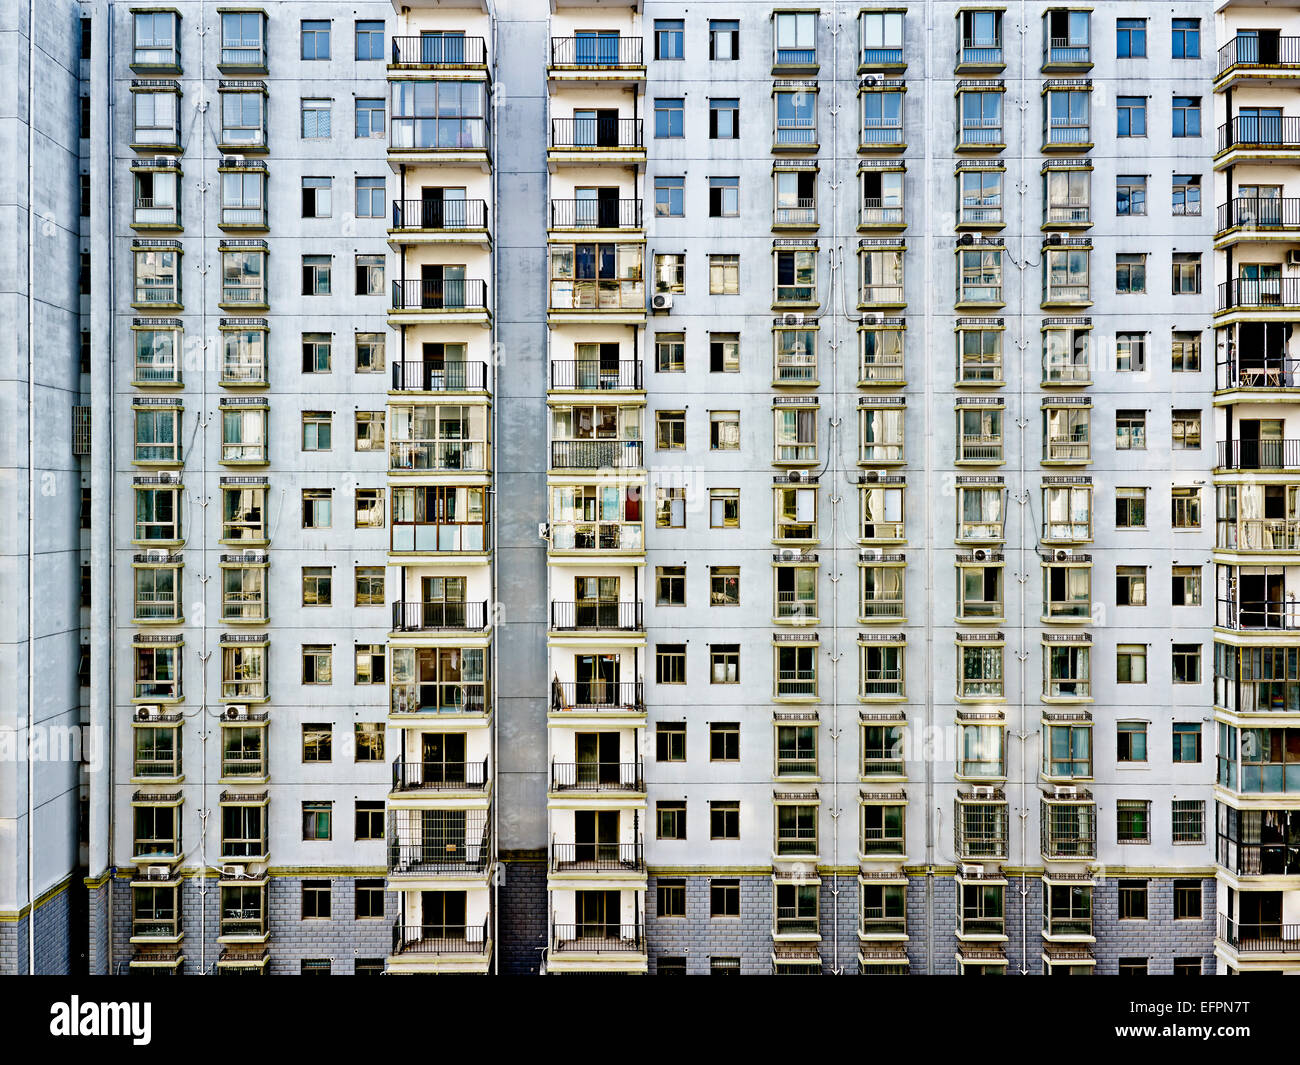 Unoccupied apartment block, Changsha, Hunan, China - Stock Image